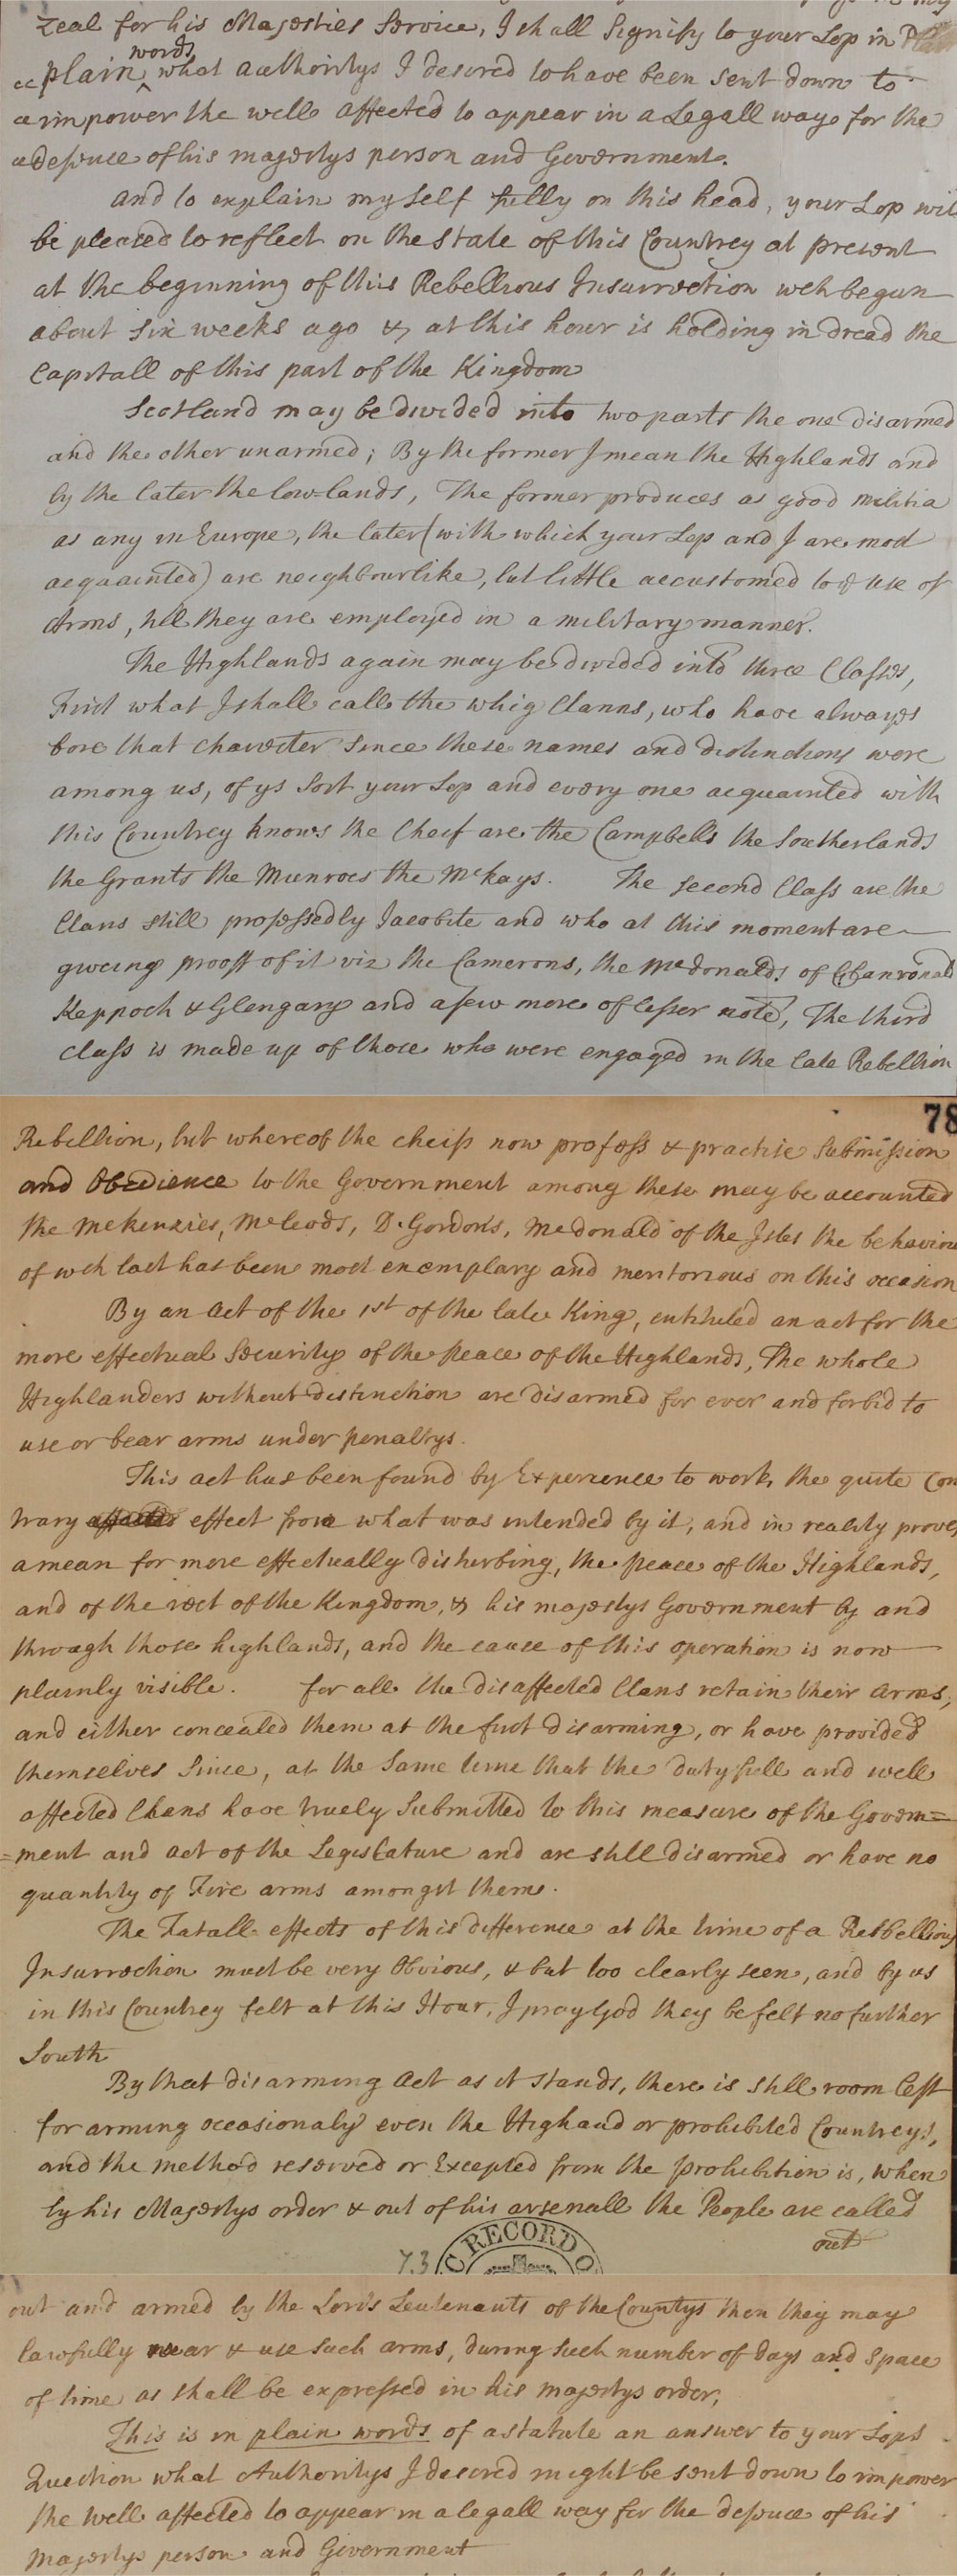 Extract of a letter from Lord Justice Clerk Thomas Fletcher, 1745 (SP 54/26/25)